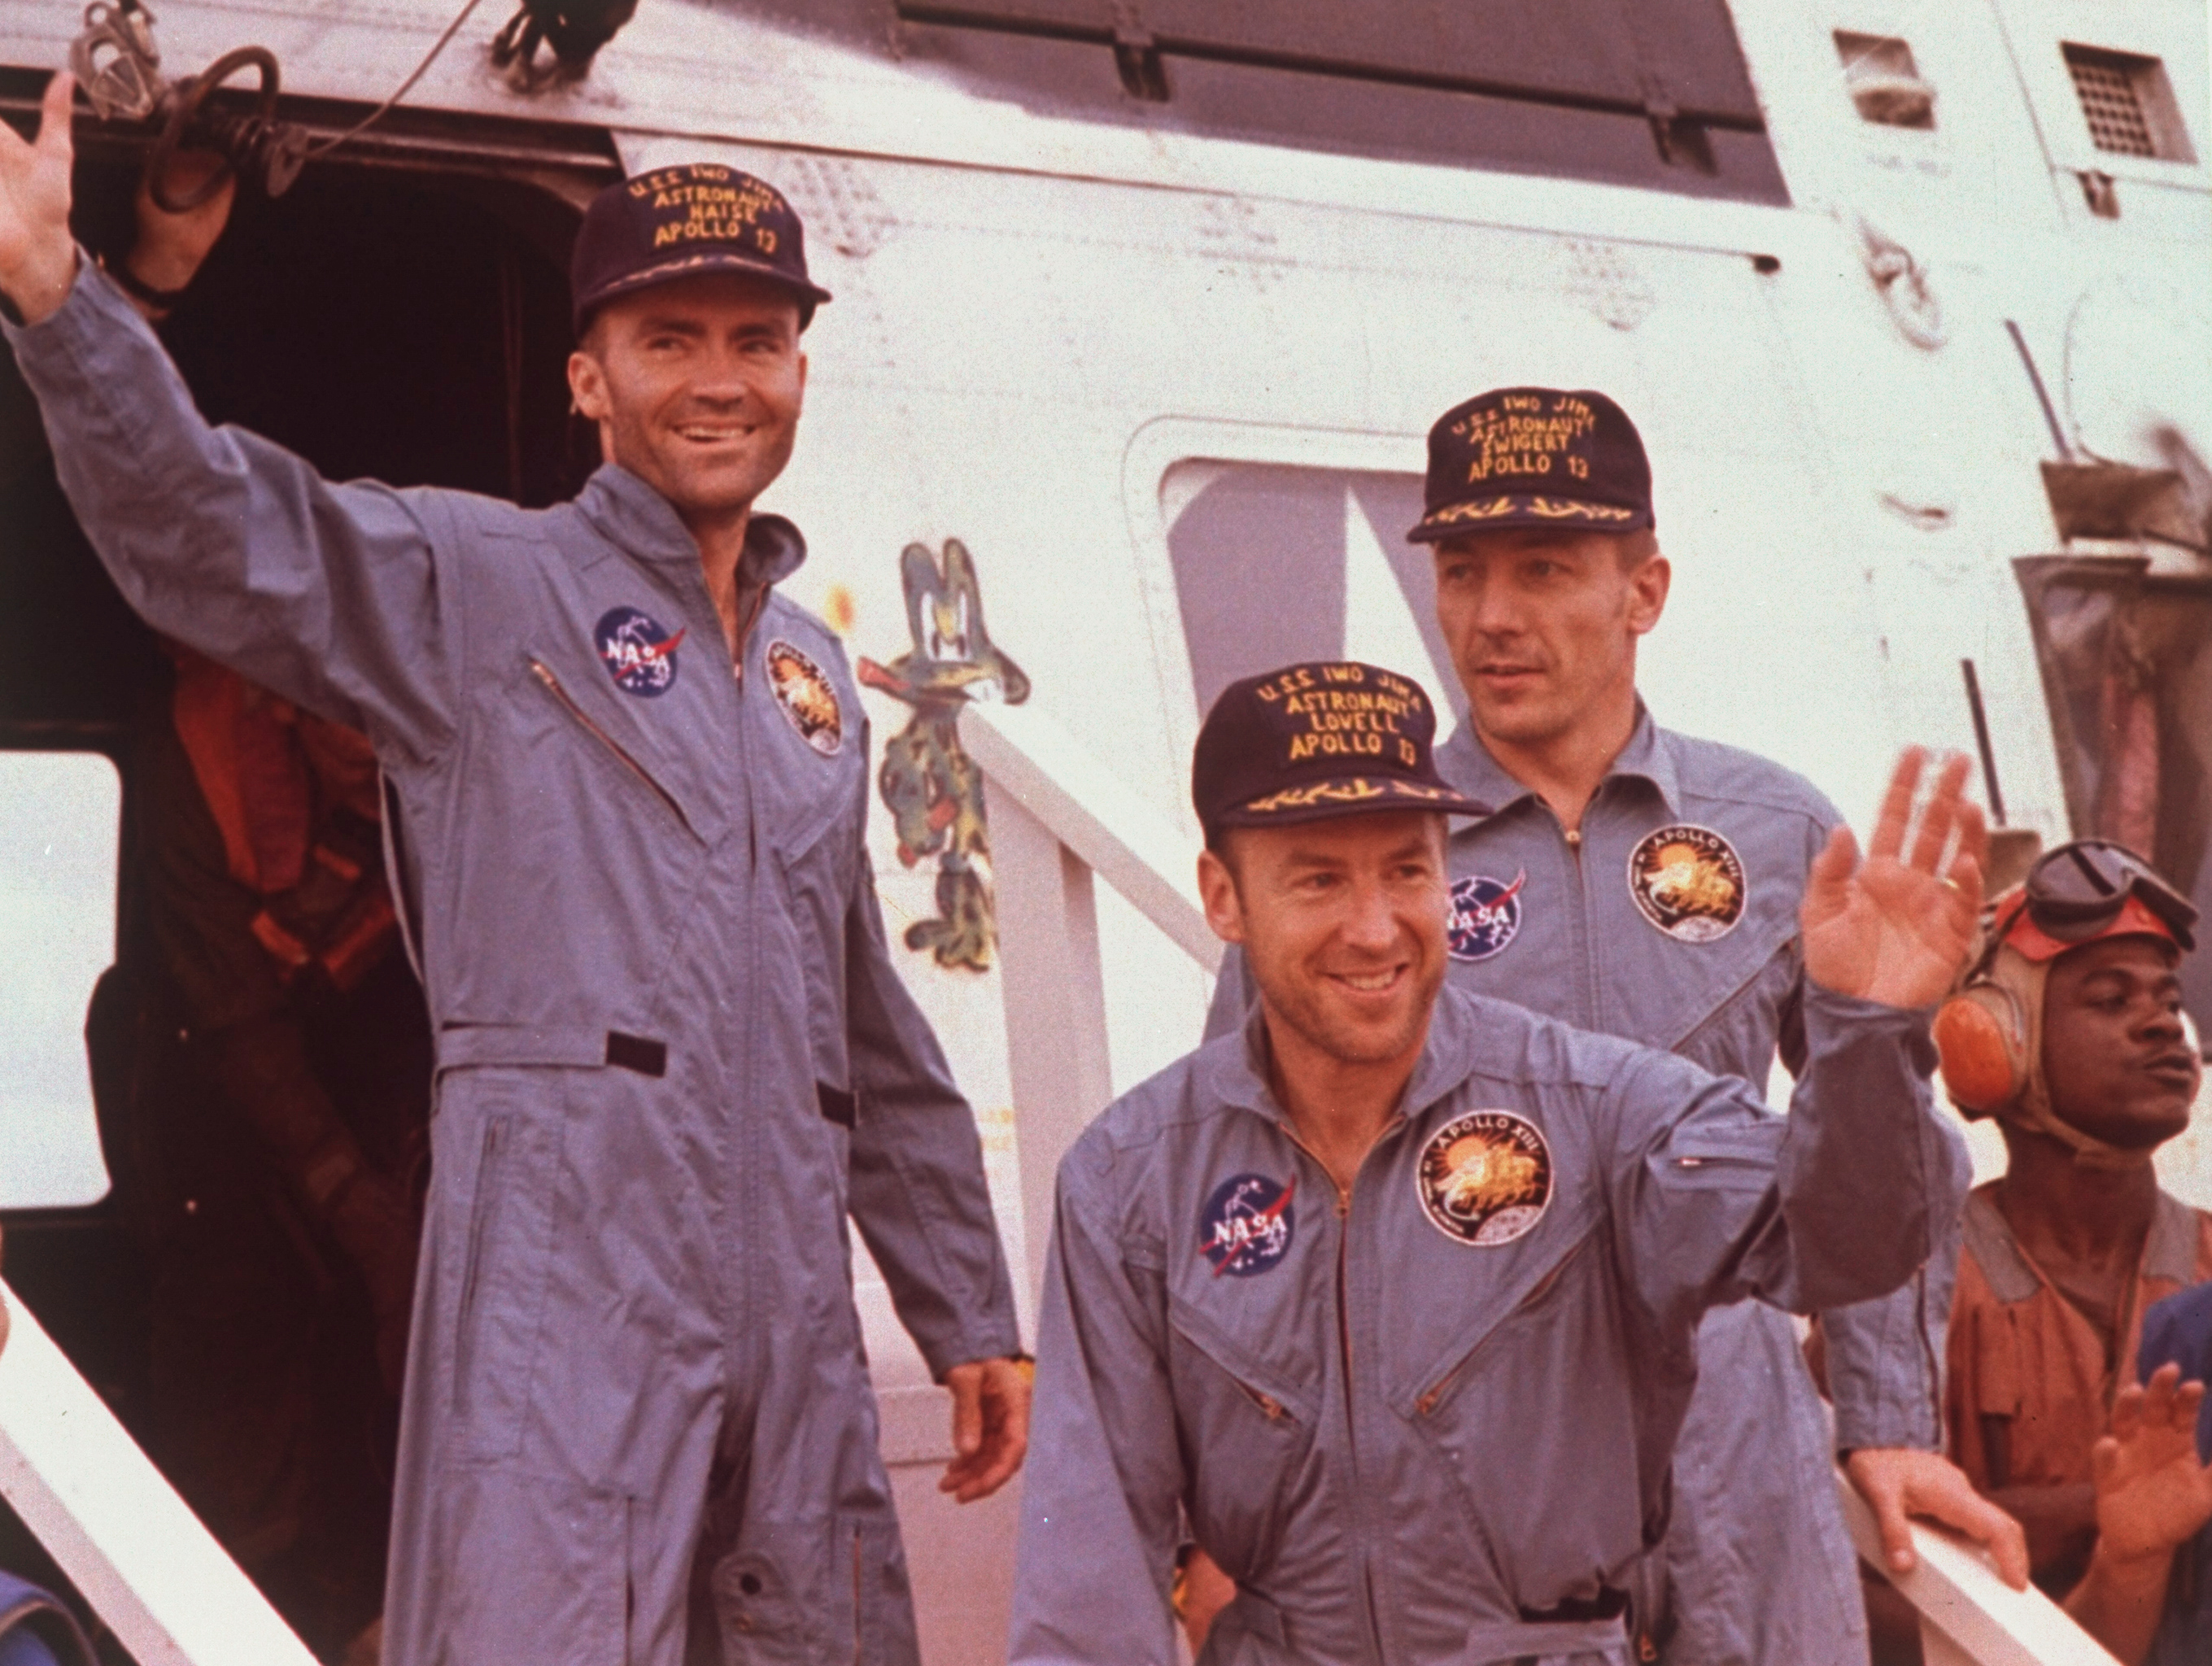 Apollo 13: 50 Years Later